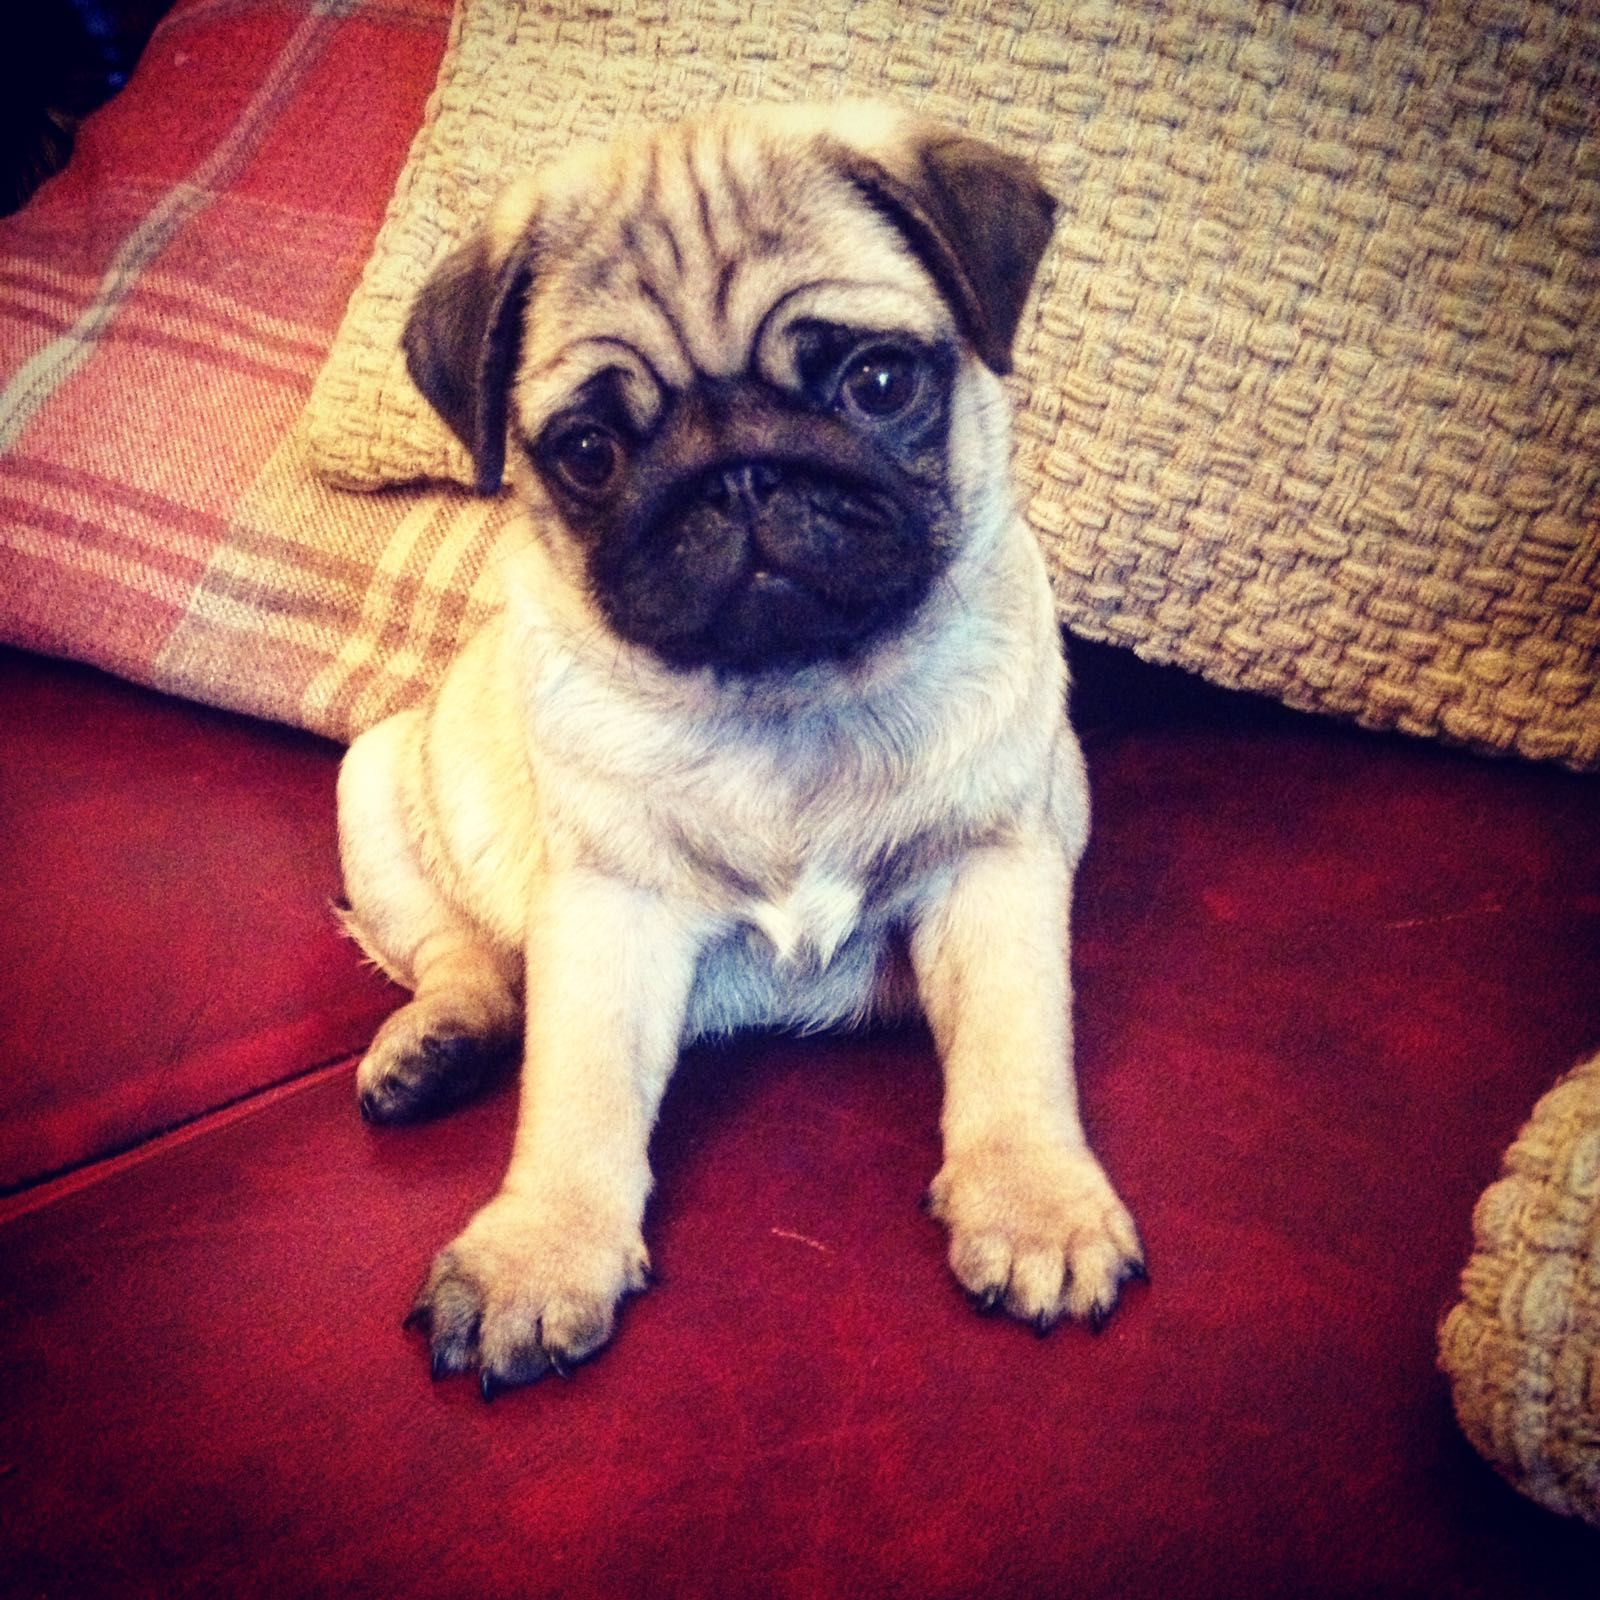 Captain The Pug Puppy Christmas Surprise With Images Pug Puppy